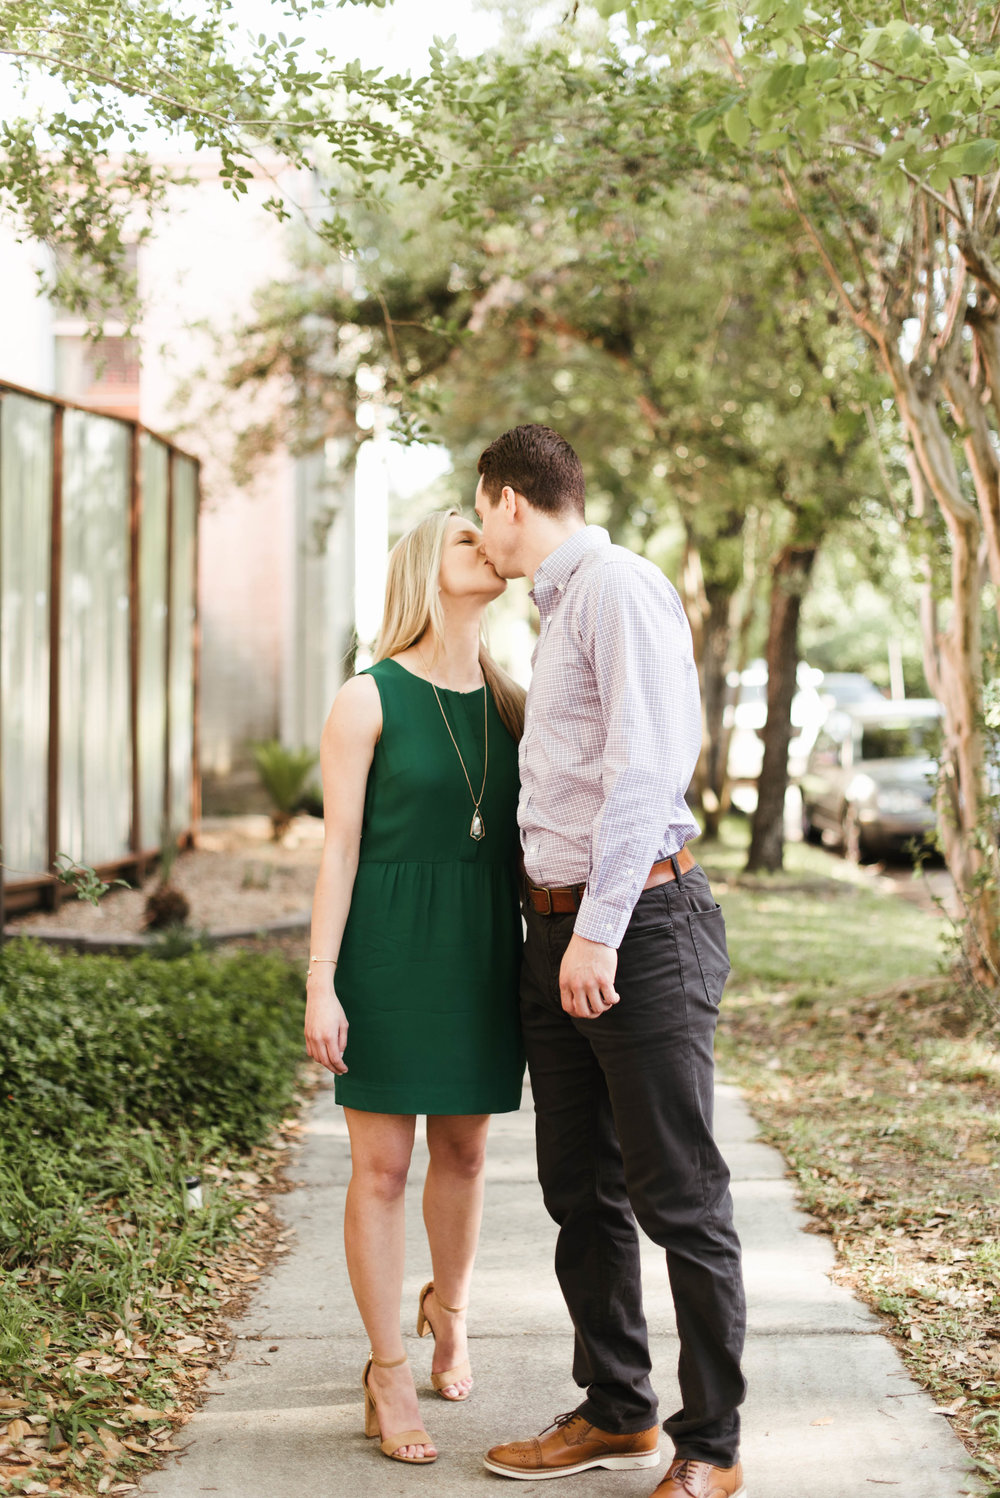 houston engagement session | Fort Worth photographer | www.jordanmitchellphotography.com